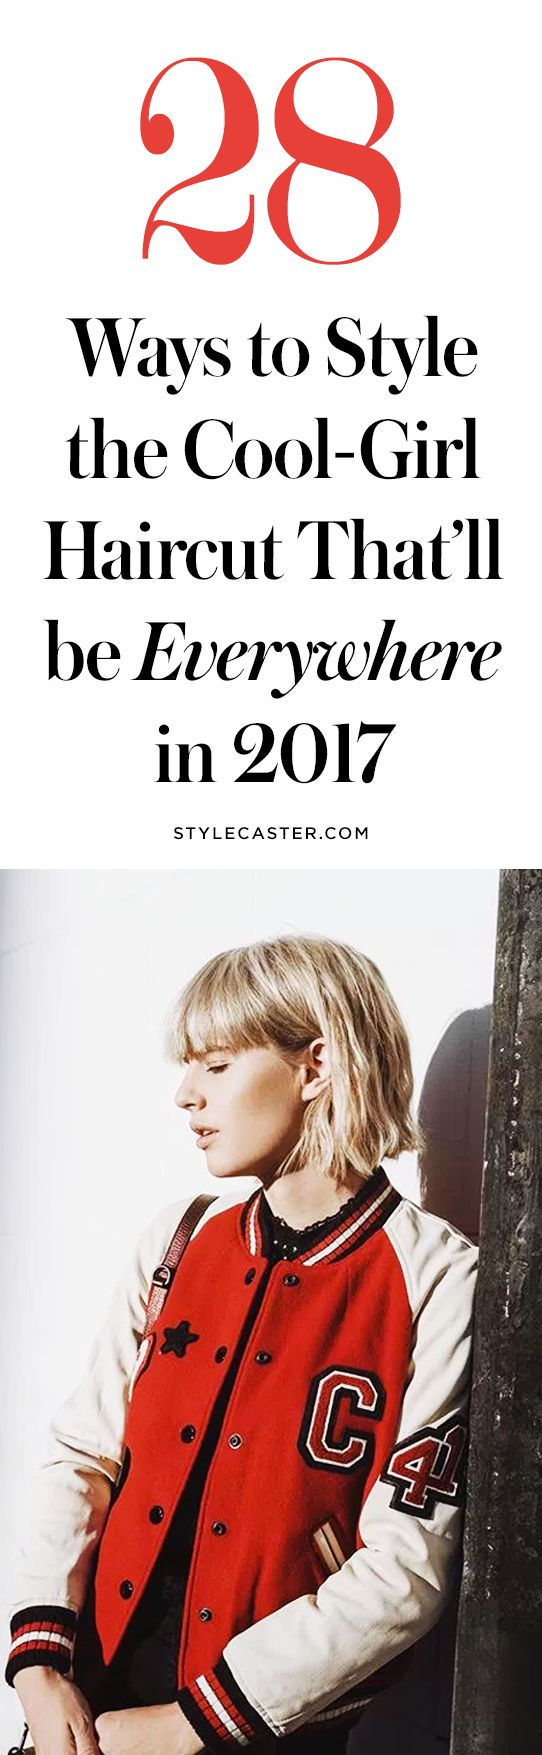 28 ways to style the coolest haircut trend for 2017—the bob with bangs   short hairstyle inspo   @stylecaster